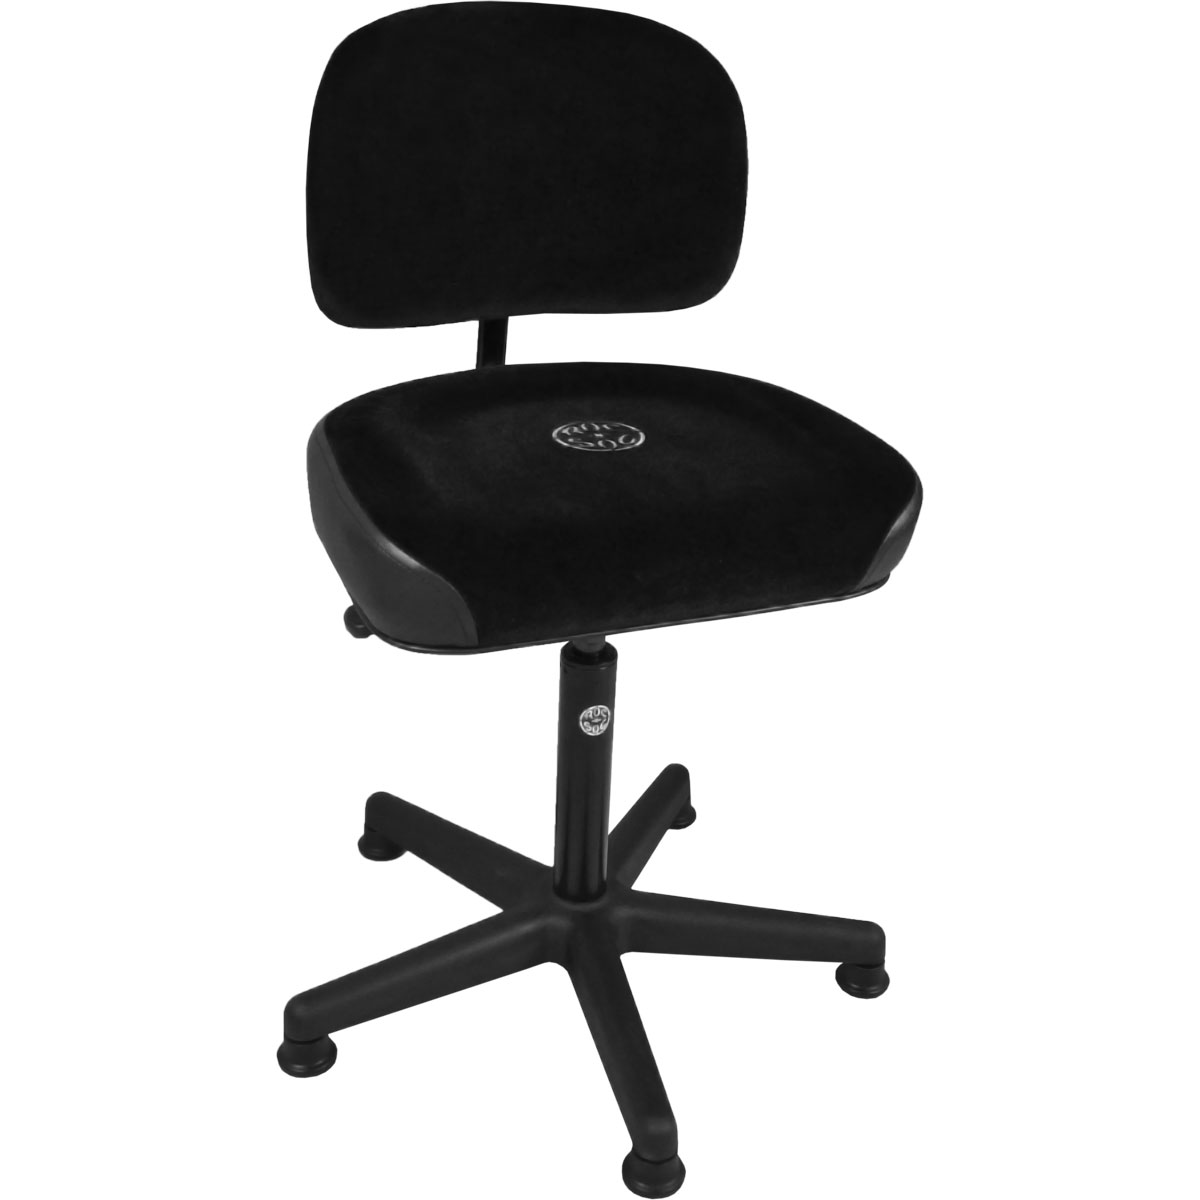 Roc-n-Soc Lunar Gas Lift Drum Throne with Square Seat & Back Rest in Black